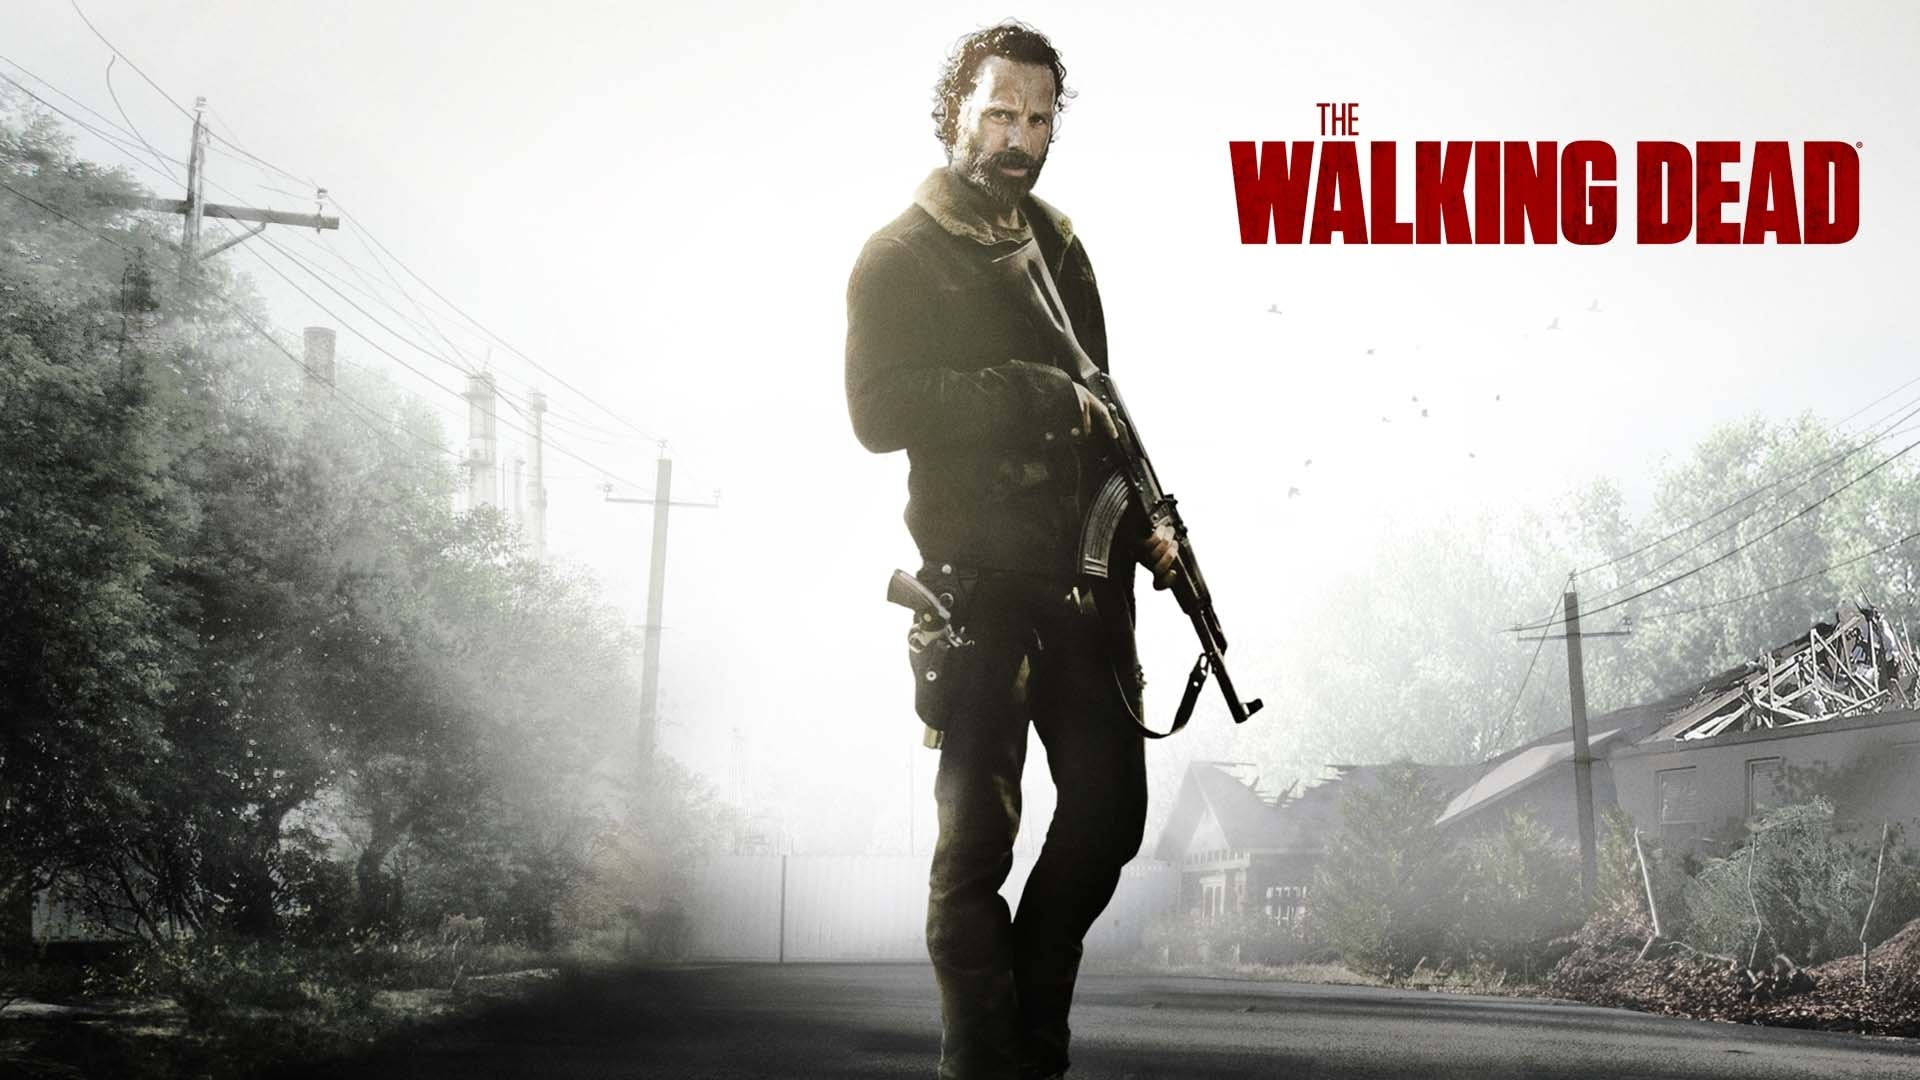 Full Hd P The Walking Dead Wallpapers Hd Desktop Backgrounds